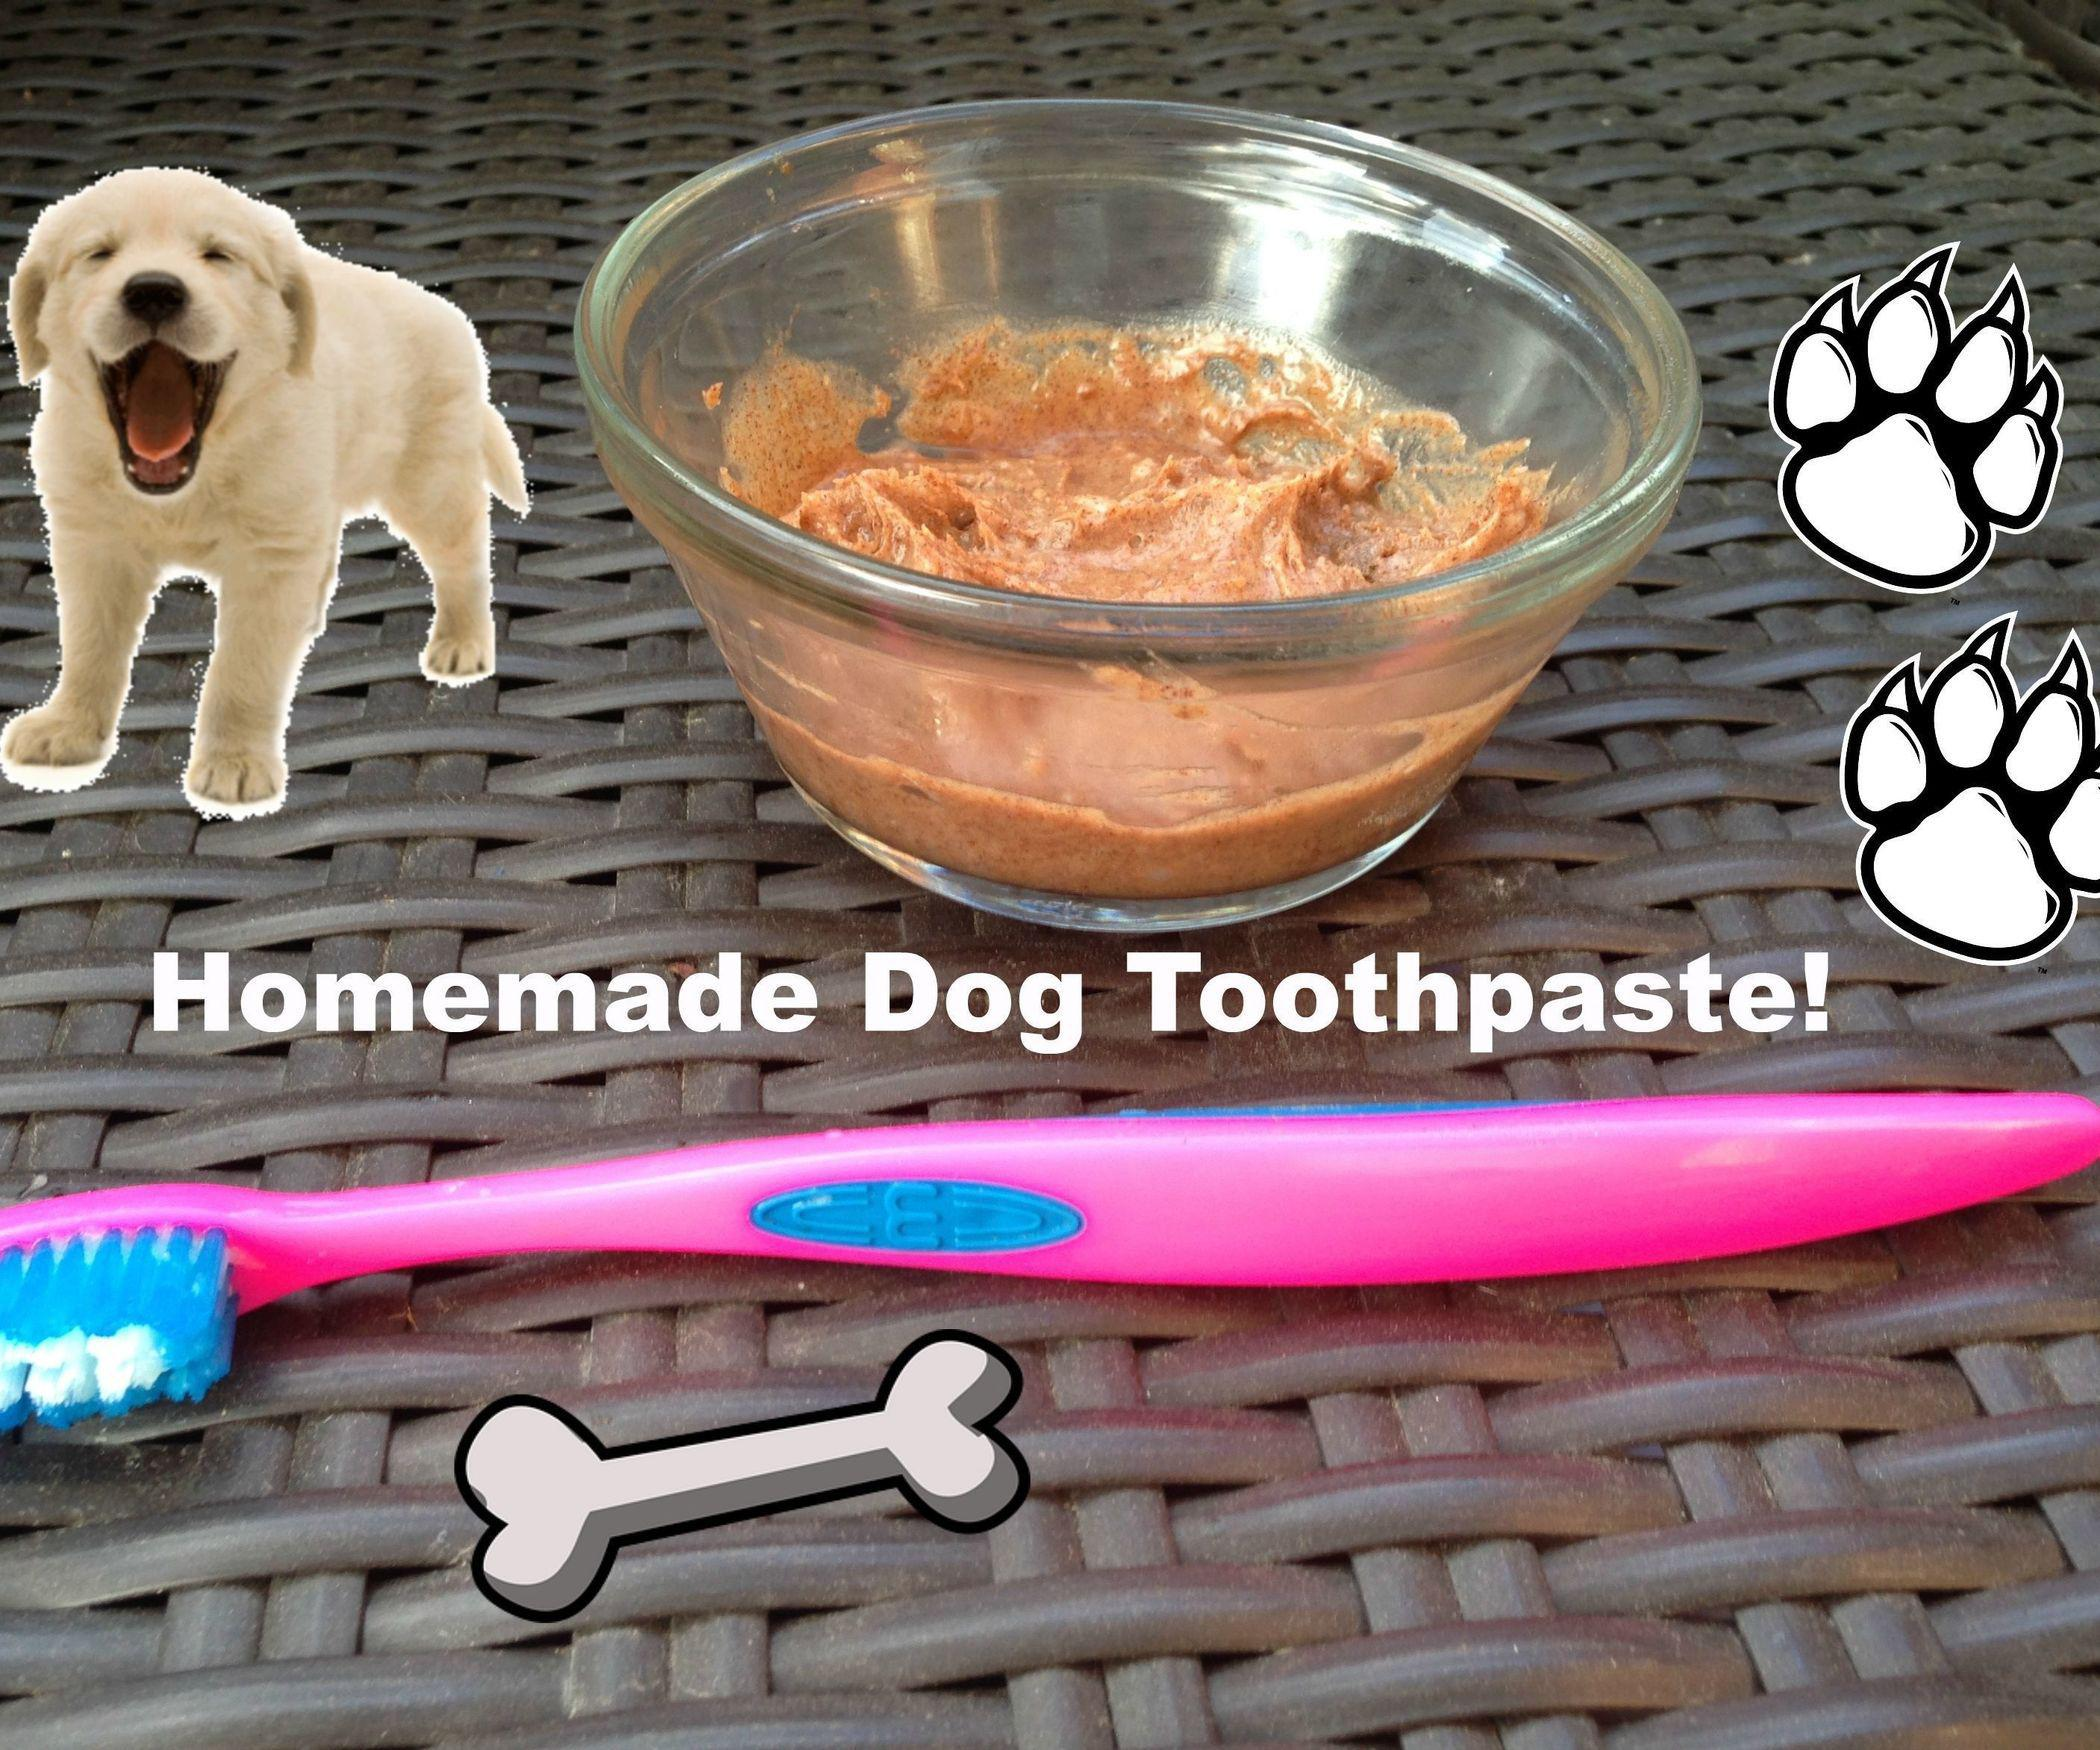 Can You Use Human Toothpaste To Clean Dogs Teeth